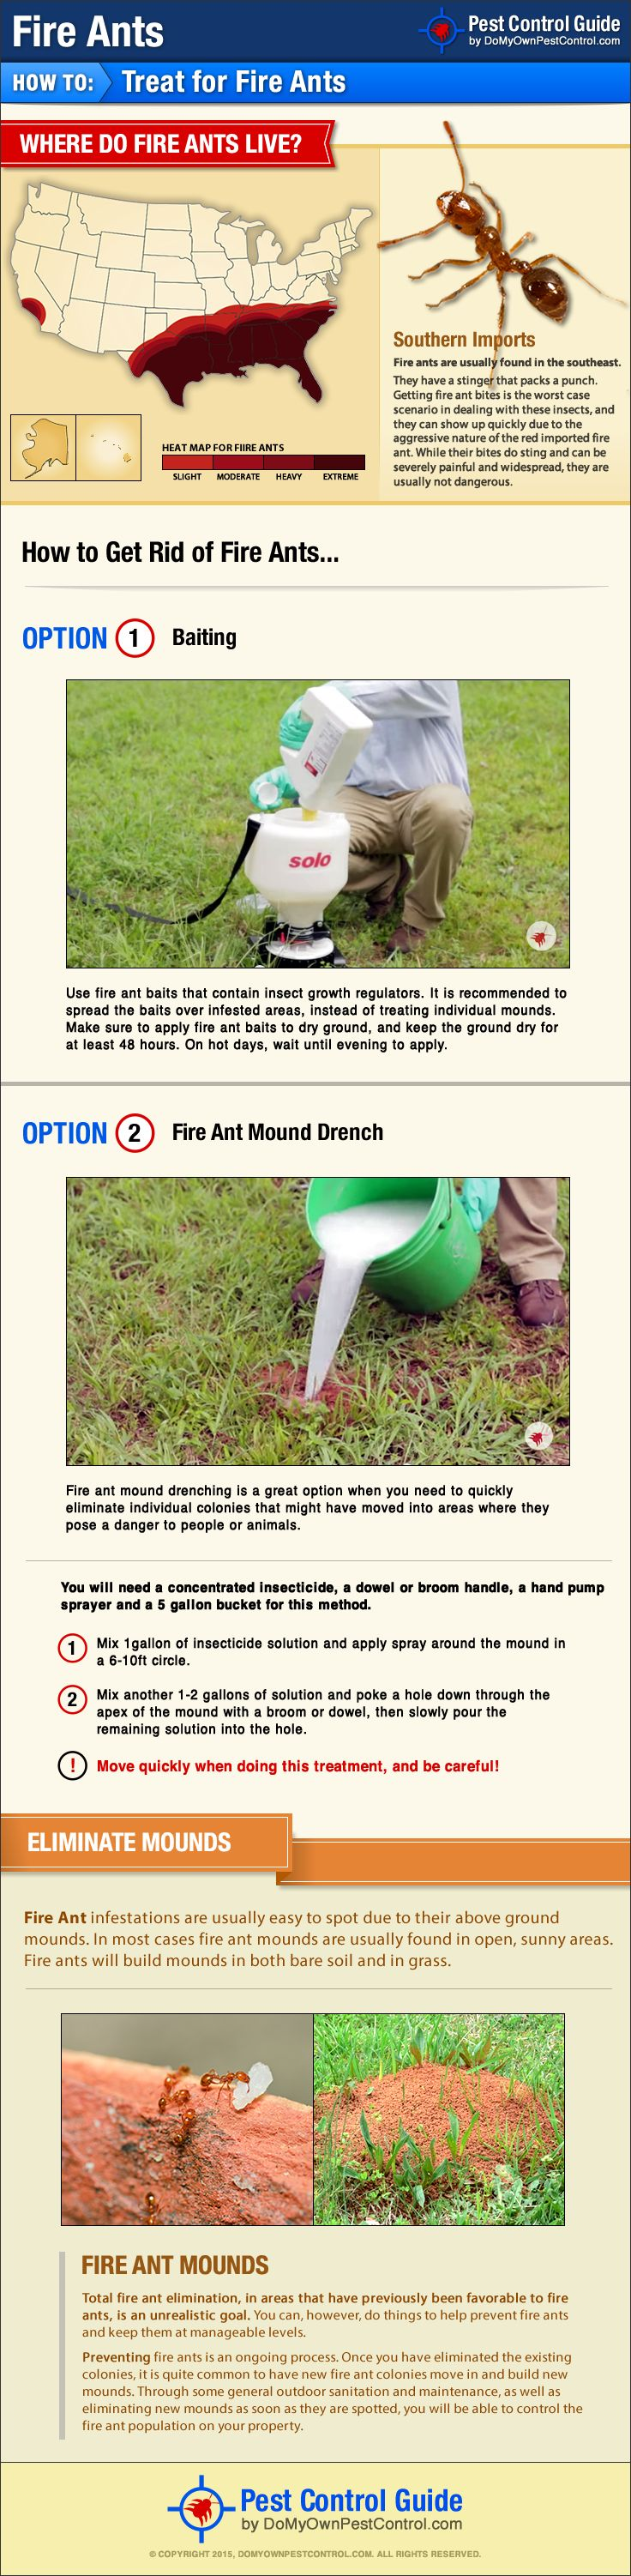 Learn how to get rid of fire ants yourself with the new DIY fire ant treatment guide from DoMyOwnPestControl.com.